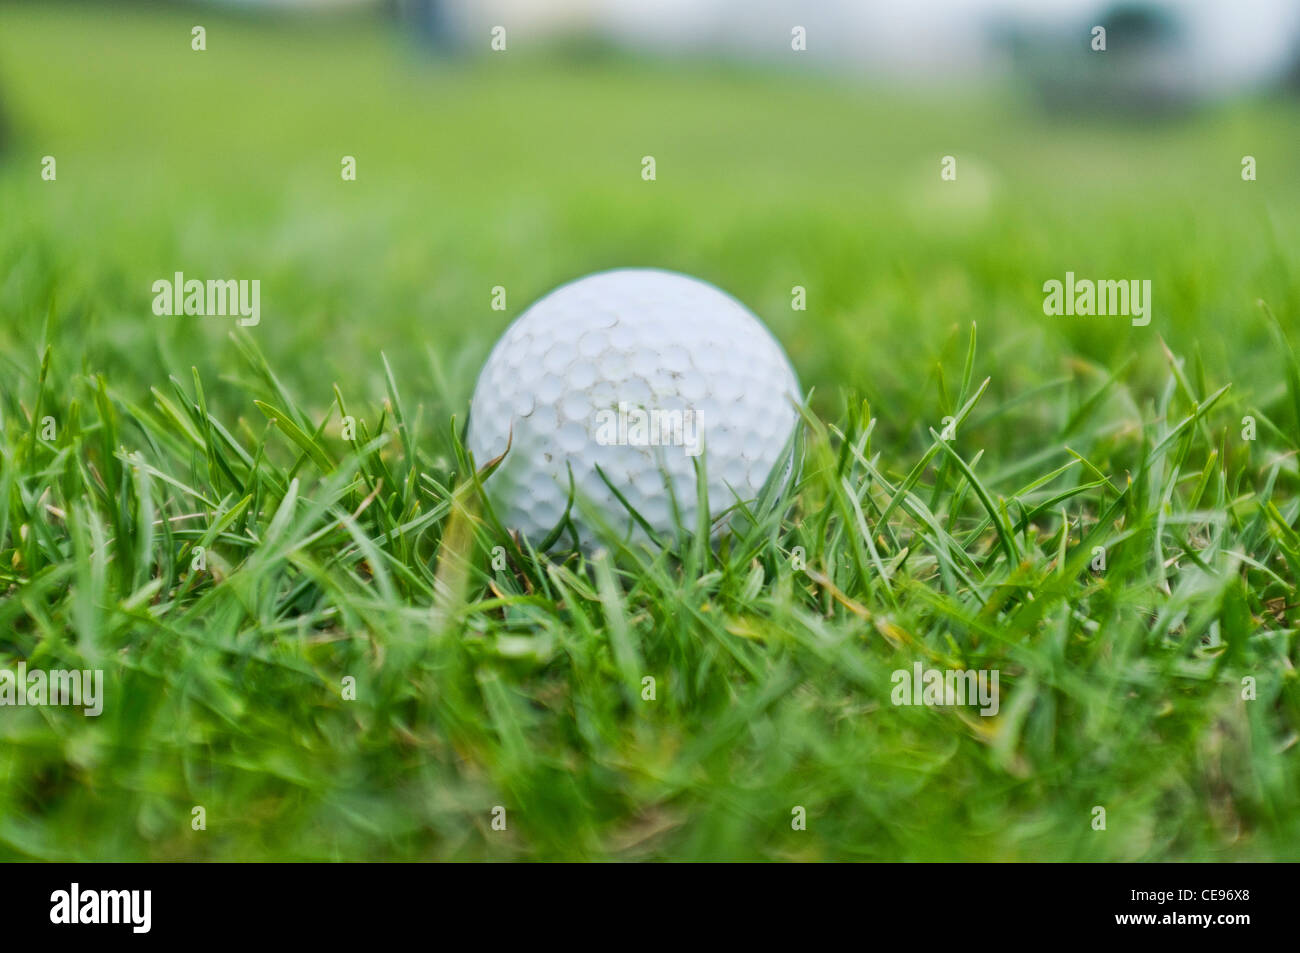 A Golf Ball on The Fairway - Stock Image